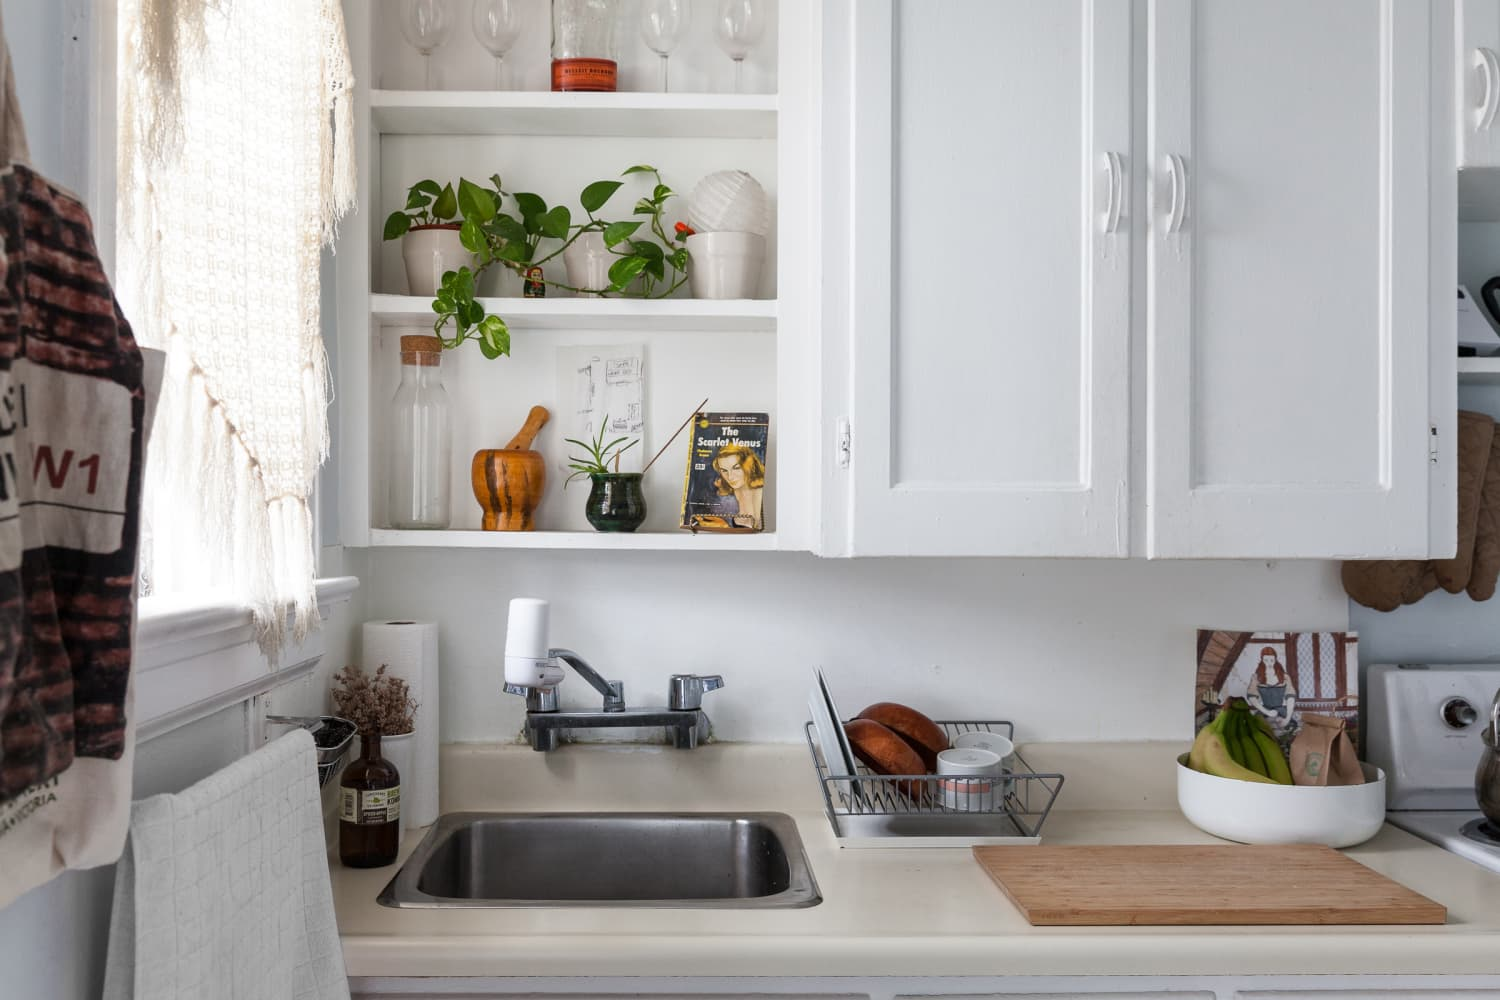 6 Organizing Mistakes That Make Your Kitchen Feel More Cluttered than It Is